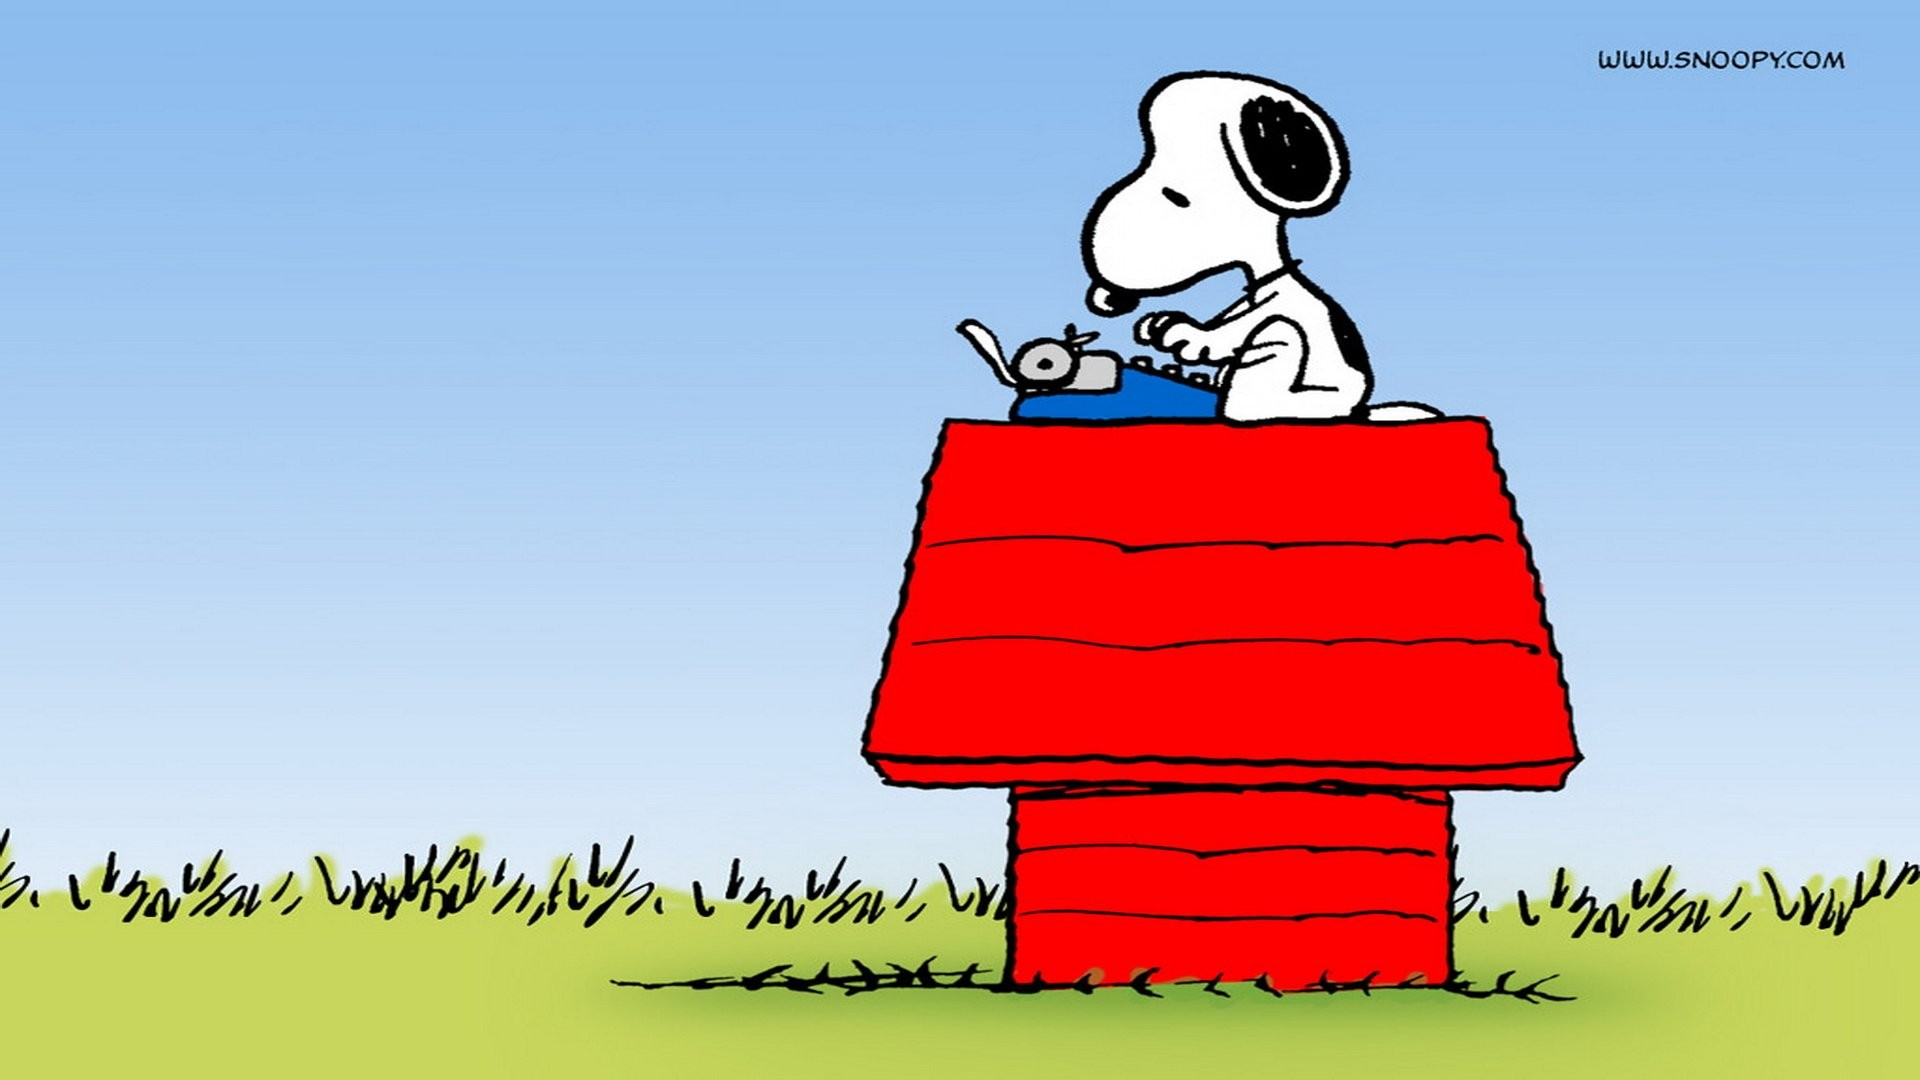 Snoopy desktop wallpaper free wallpaper directory free peanuts desktop wallpaper source snoopy wallpaper download free high resolution backgrounds for voltagebd Image collections